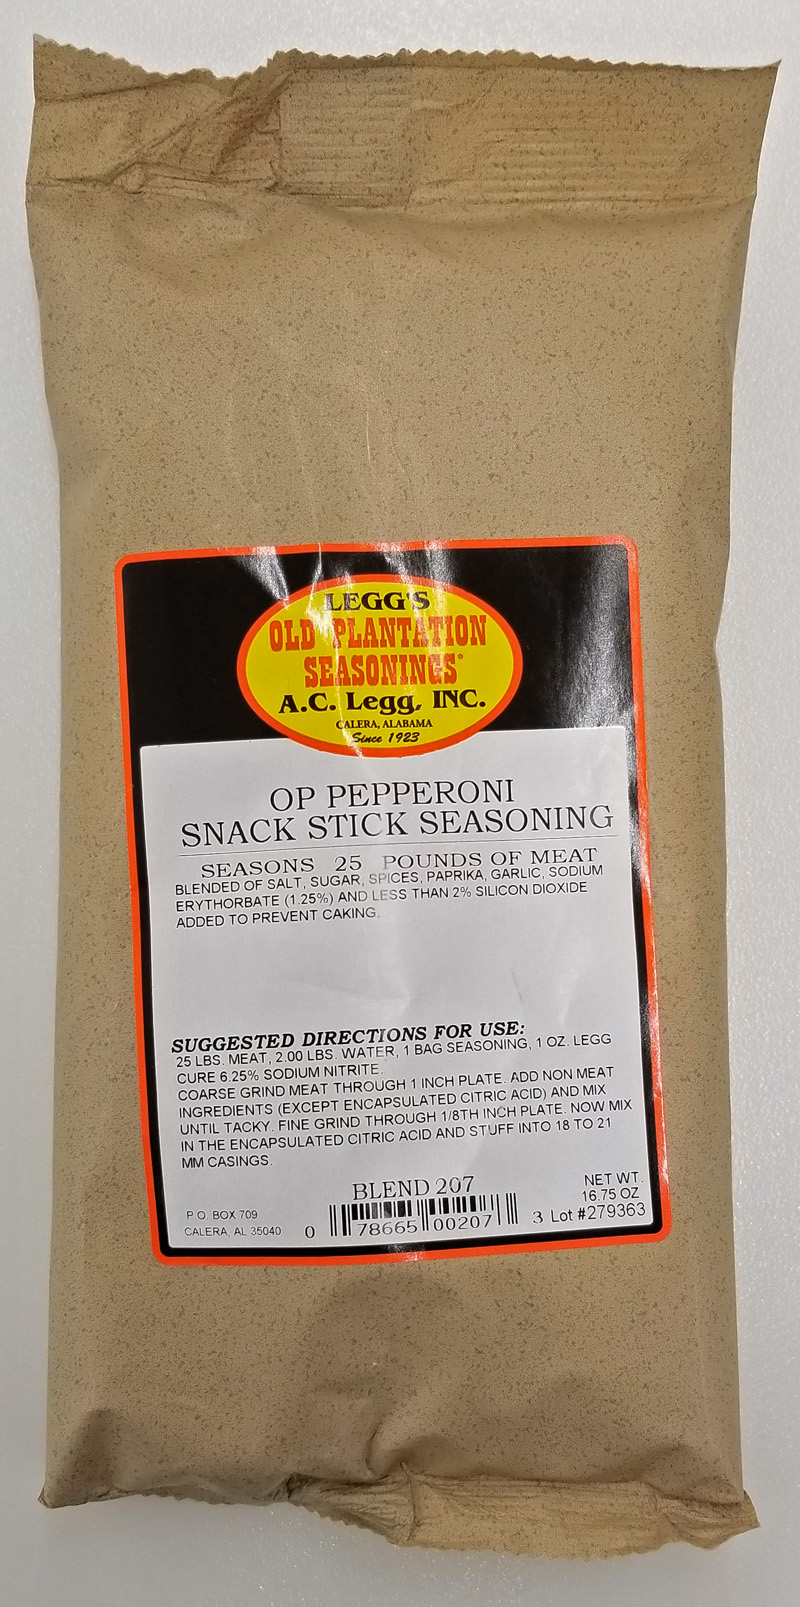 AC Leggs OP Pepperoni Snack Stick Seasoning THUMBNAIL